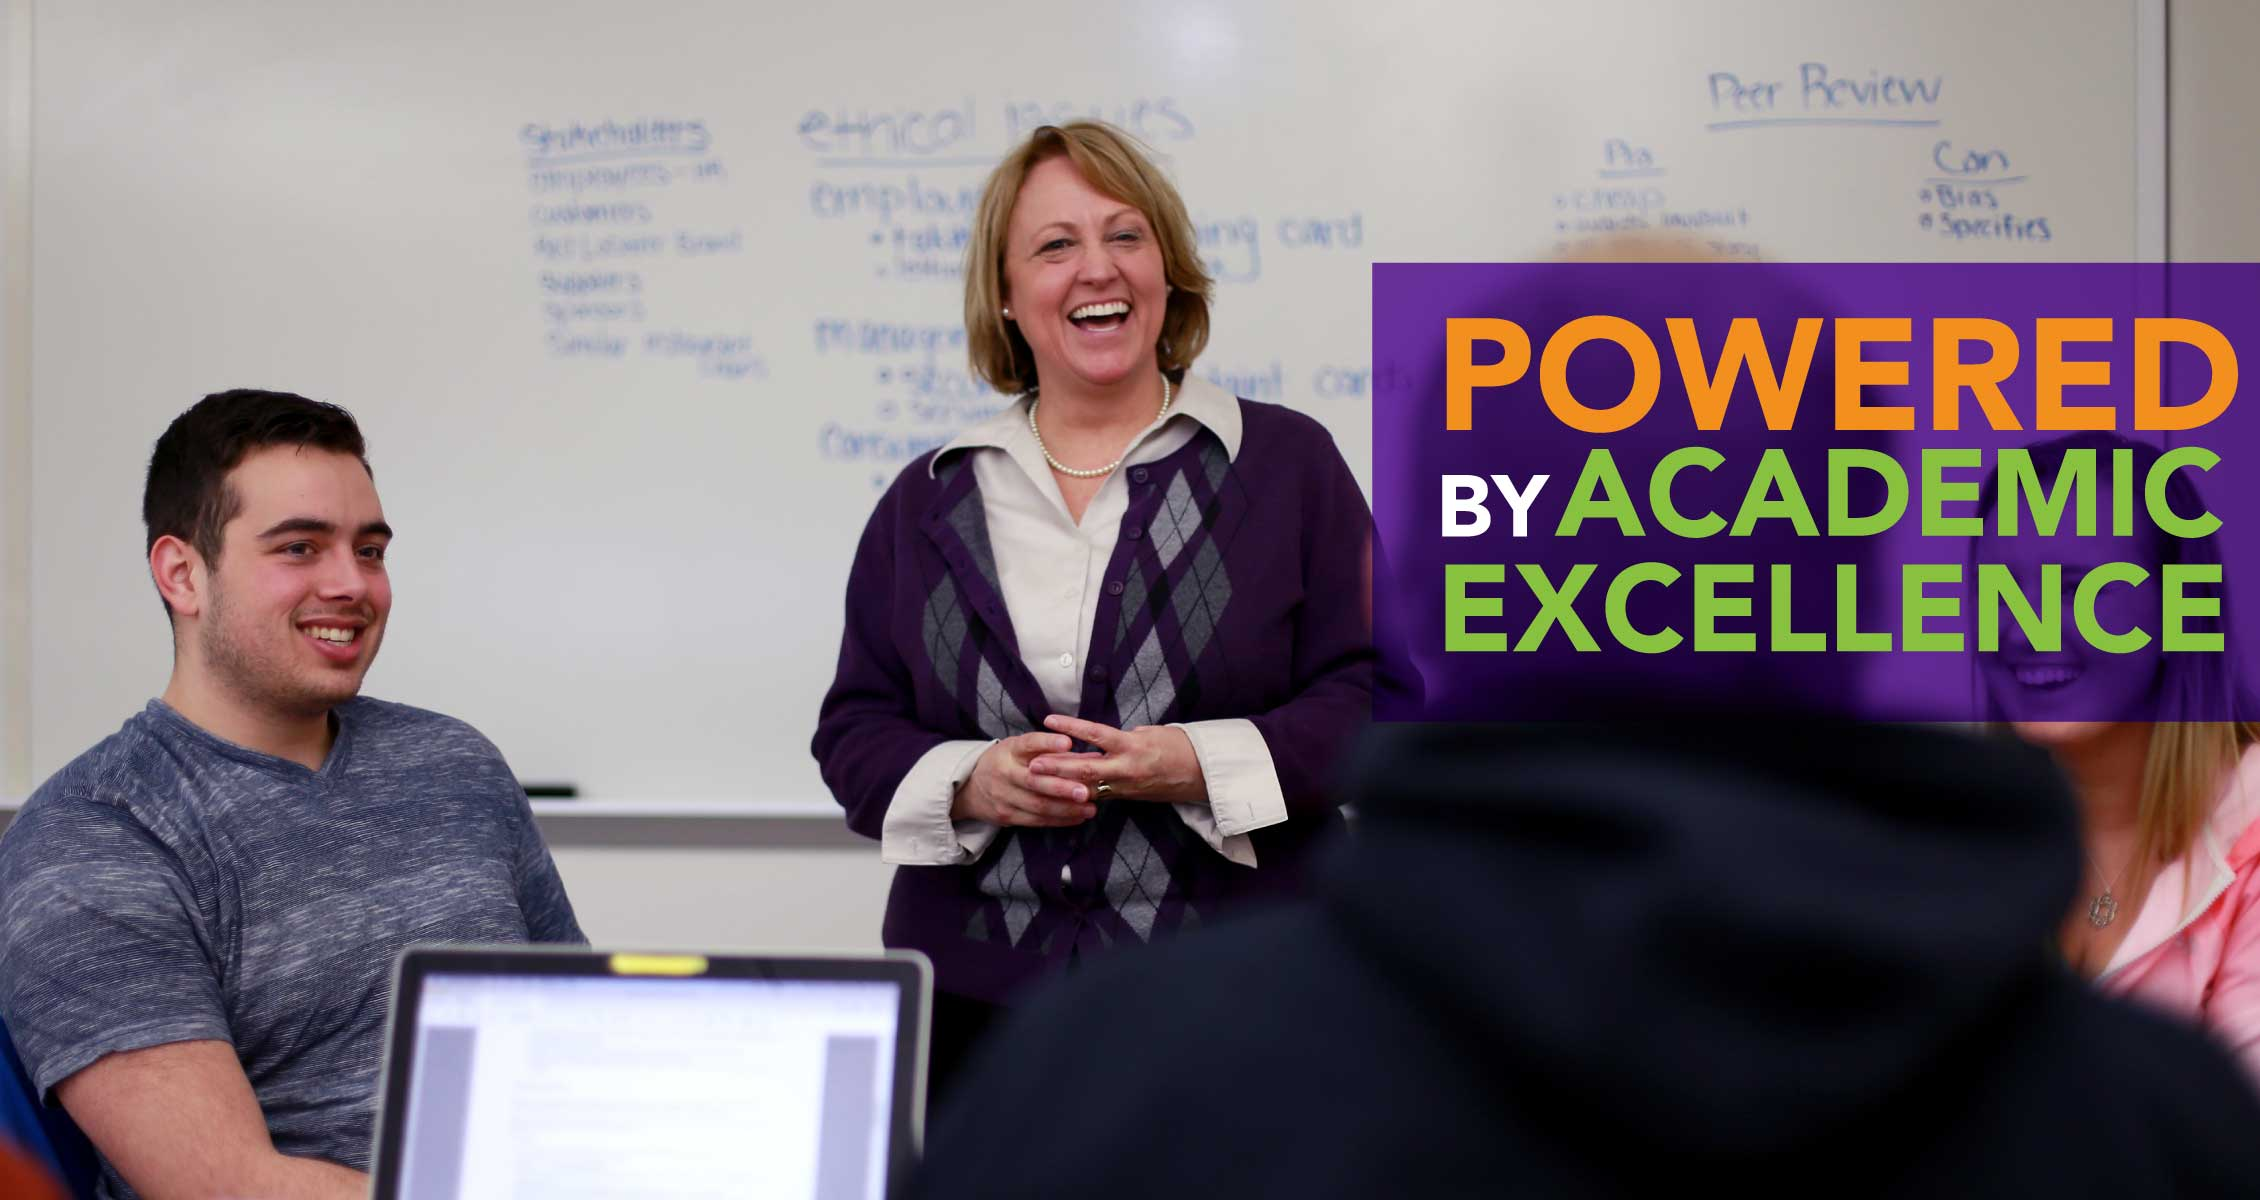 Powerwed By Academic Excellence: Instructor laughing with students in class